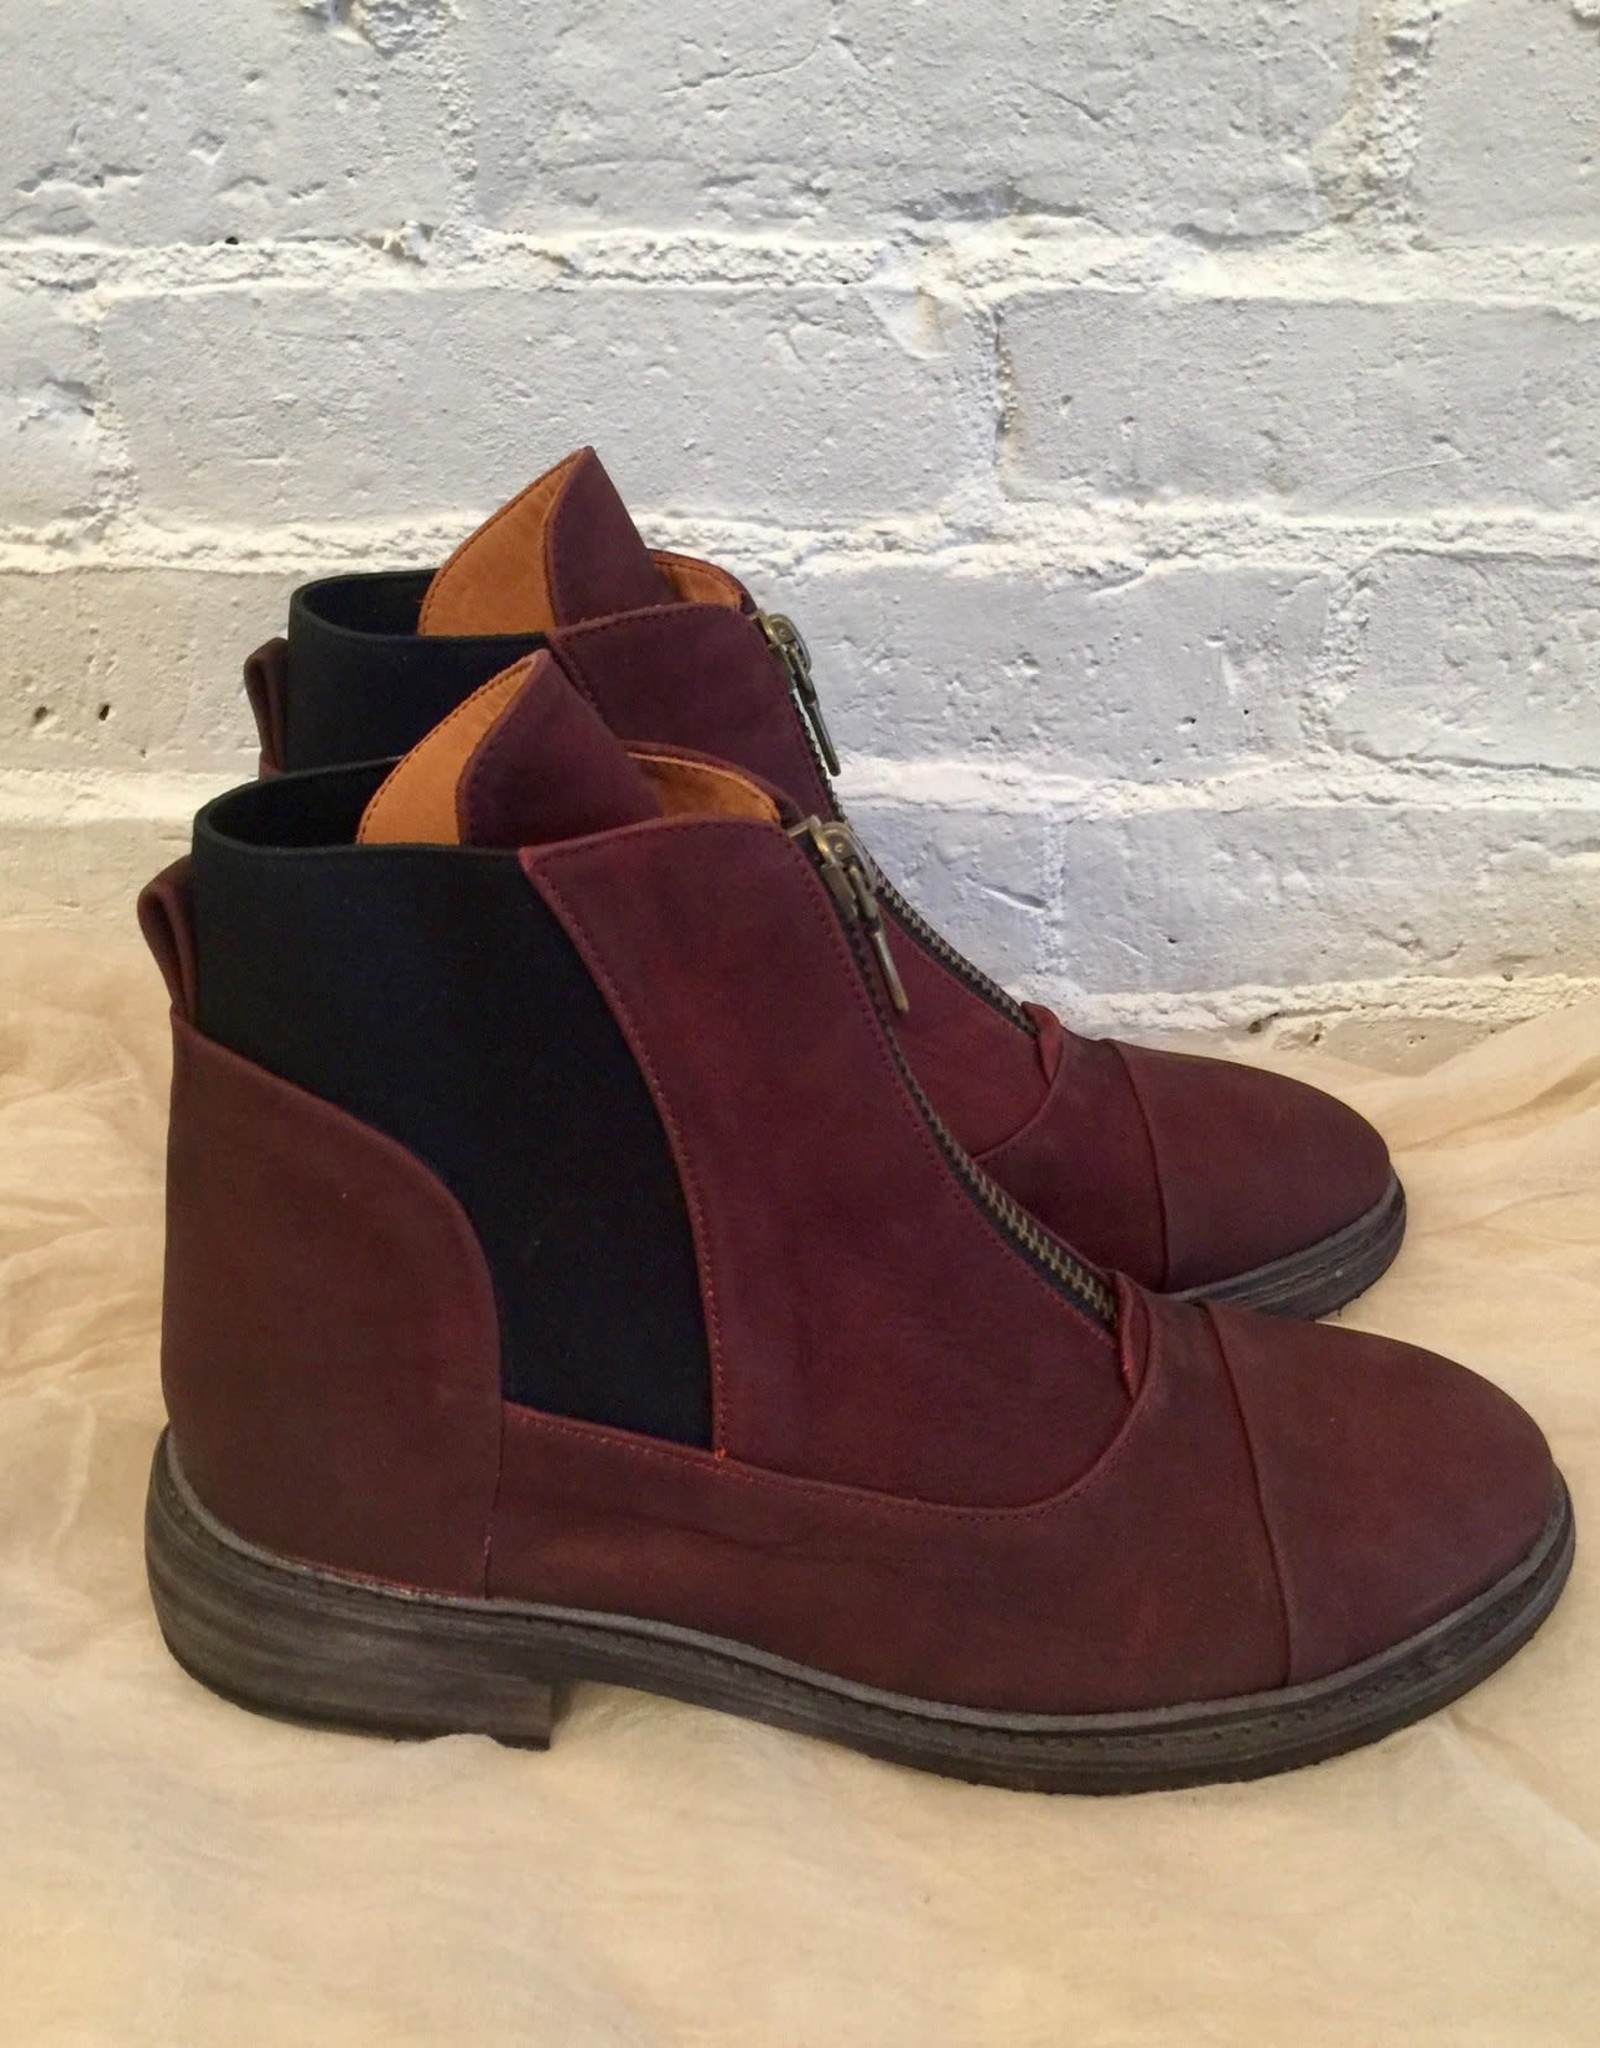 P. Monjo Ox Blood Clos Boot